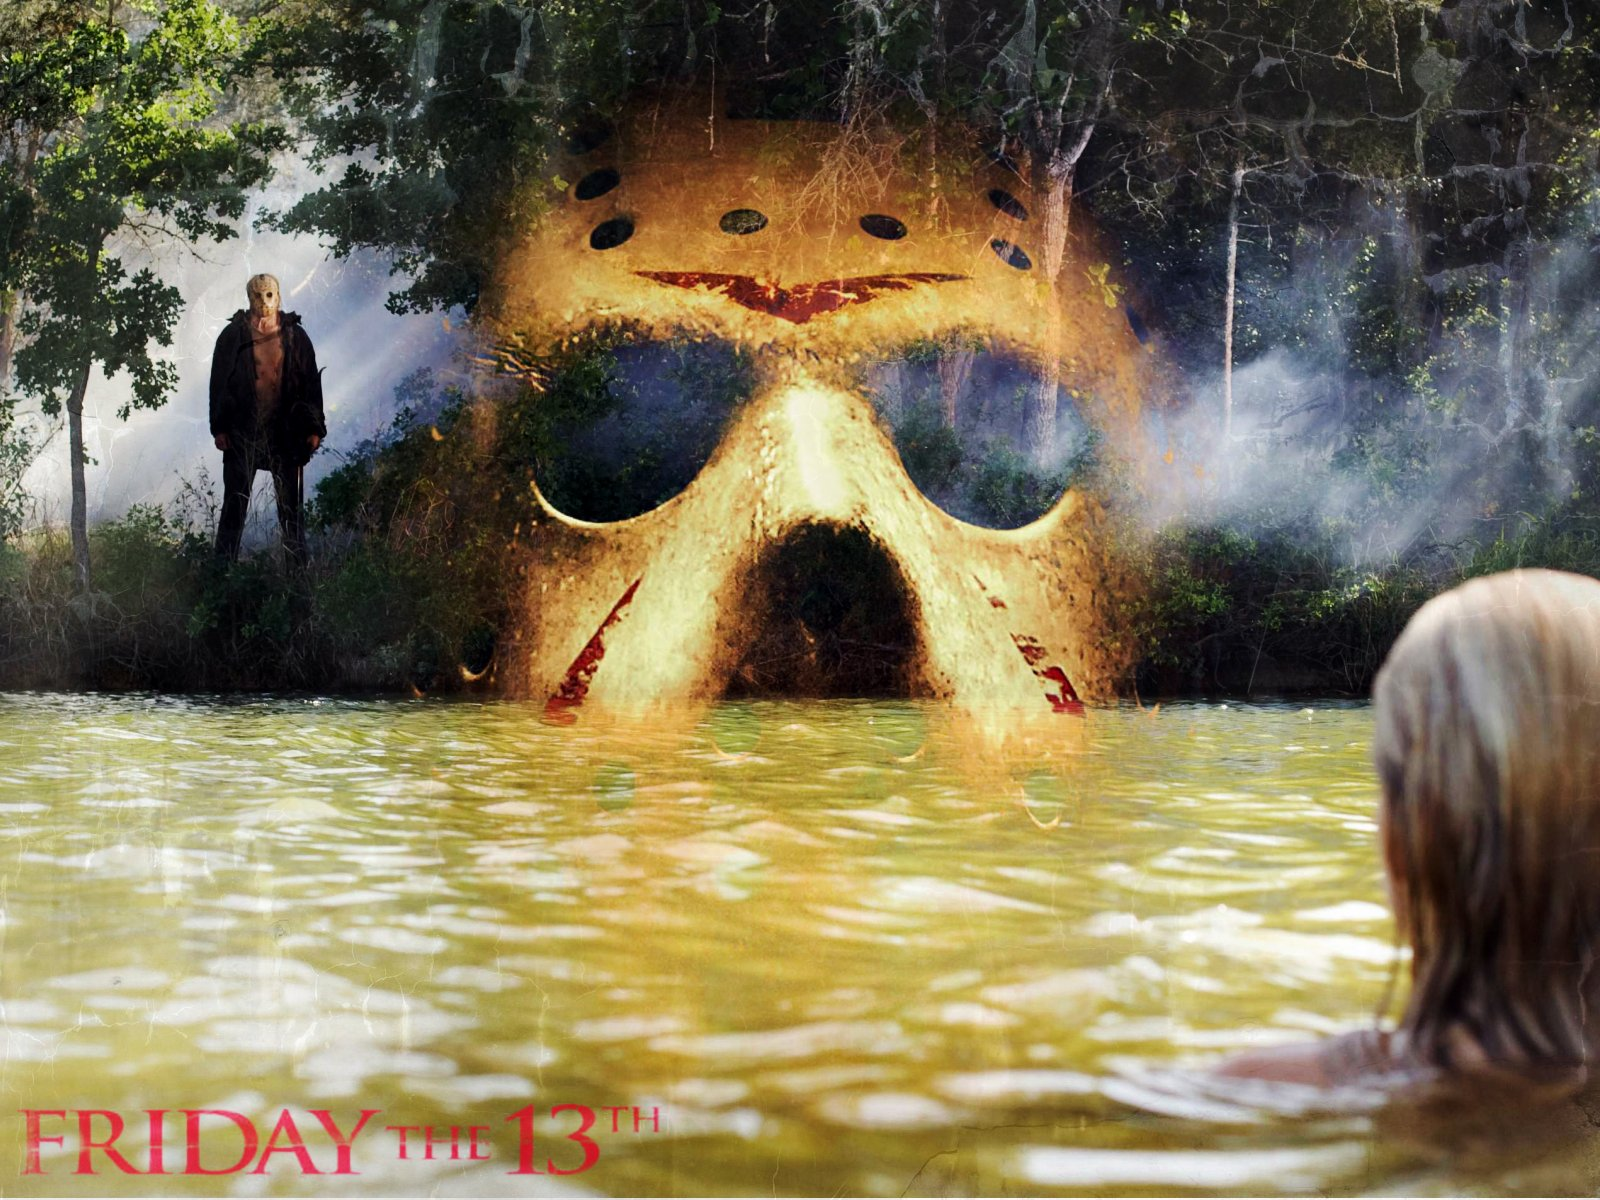 Friday-the-13th-2009-horror-movies-23926925-1600-1200